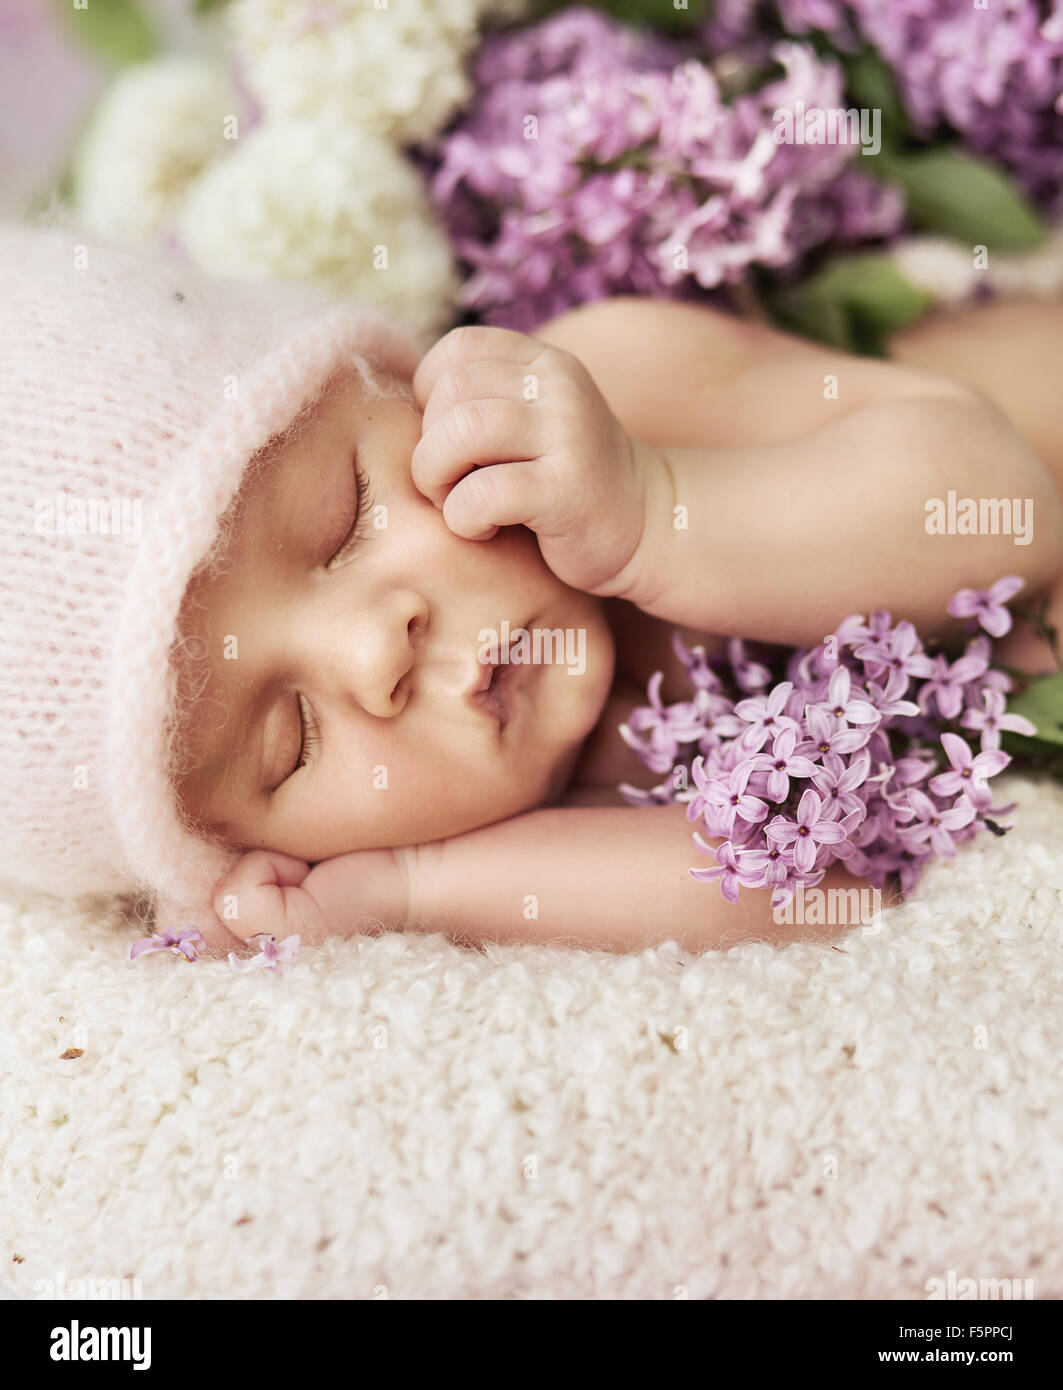 Cute newborn child sleeping on the soft carpet Stock Photo